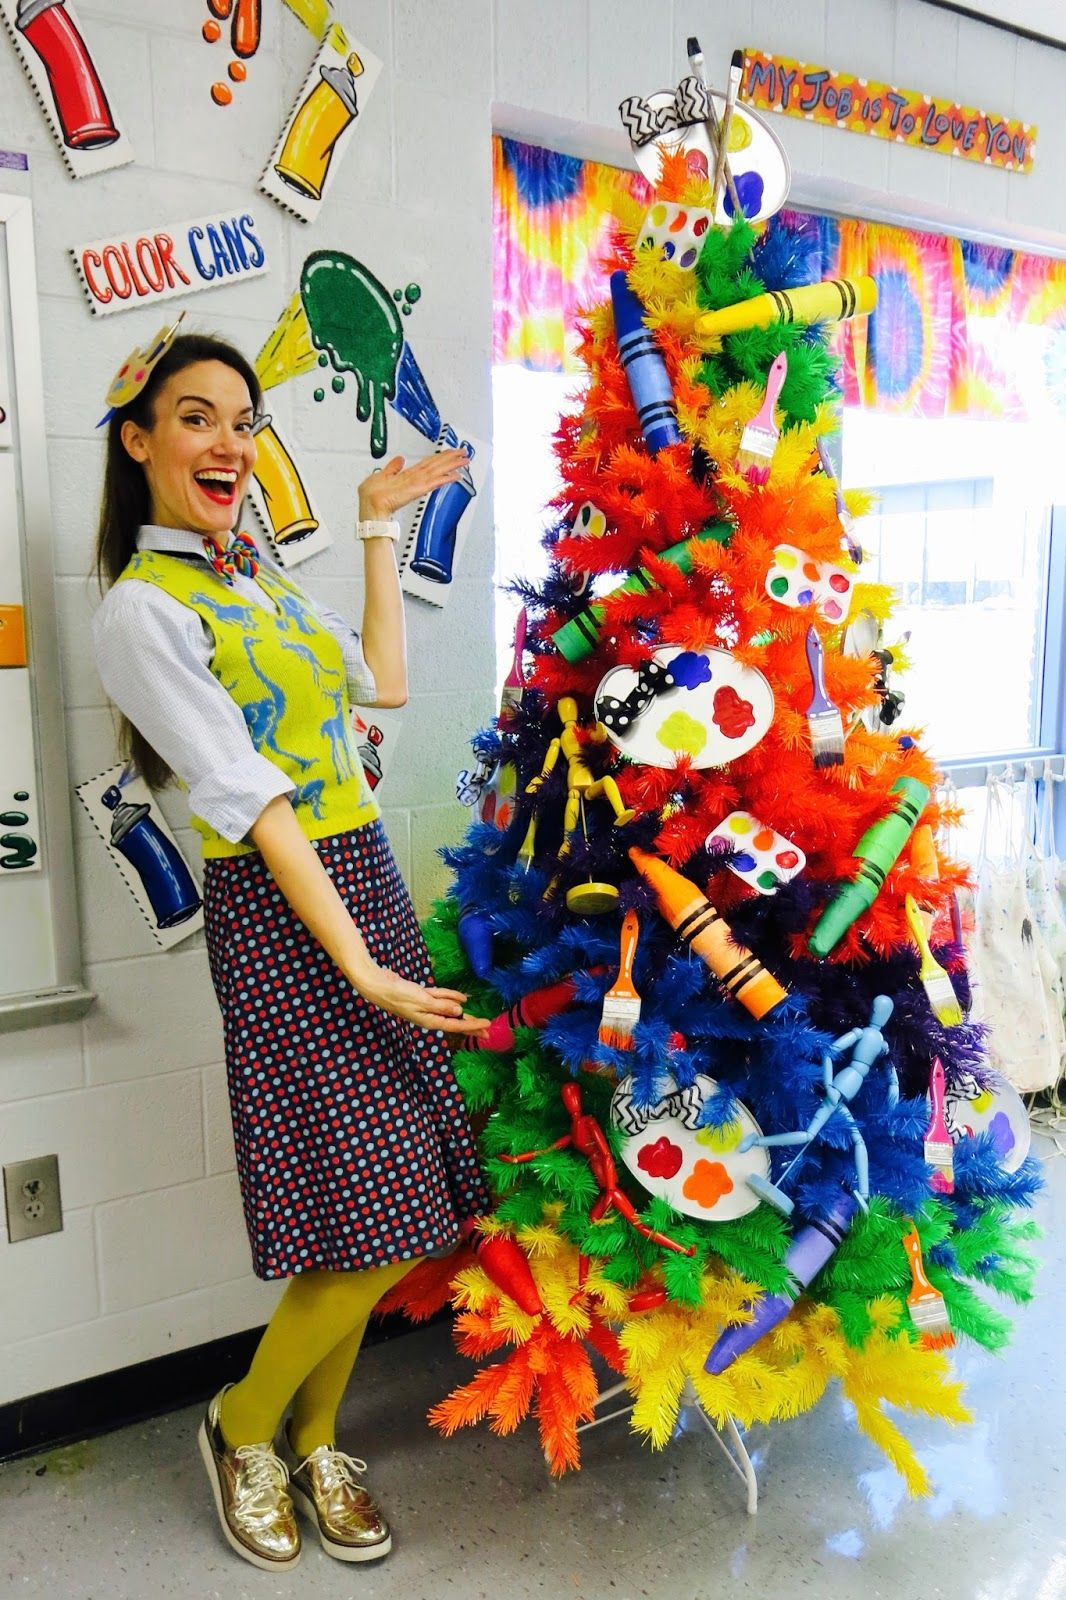 An elementary art teacher blog with art projects and